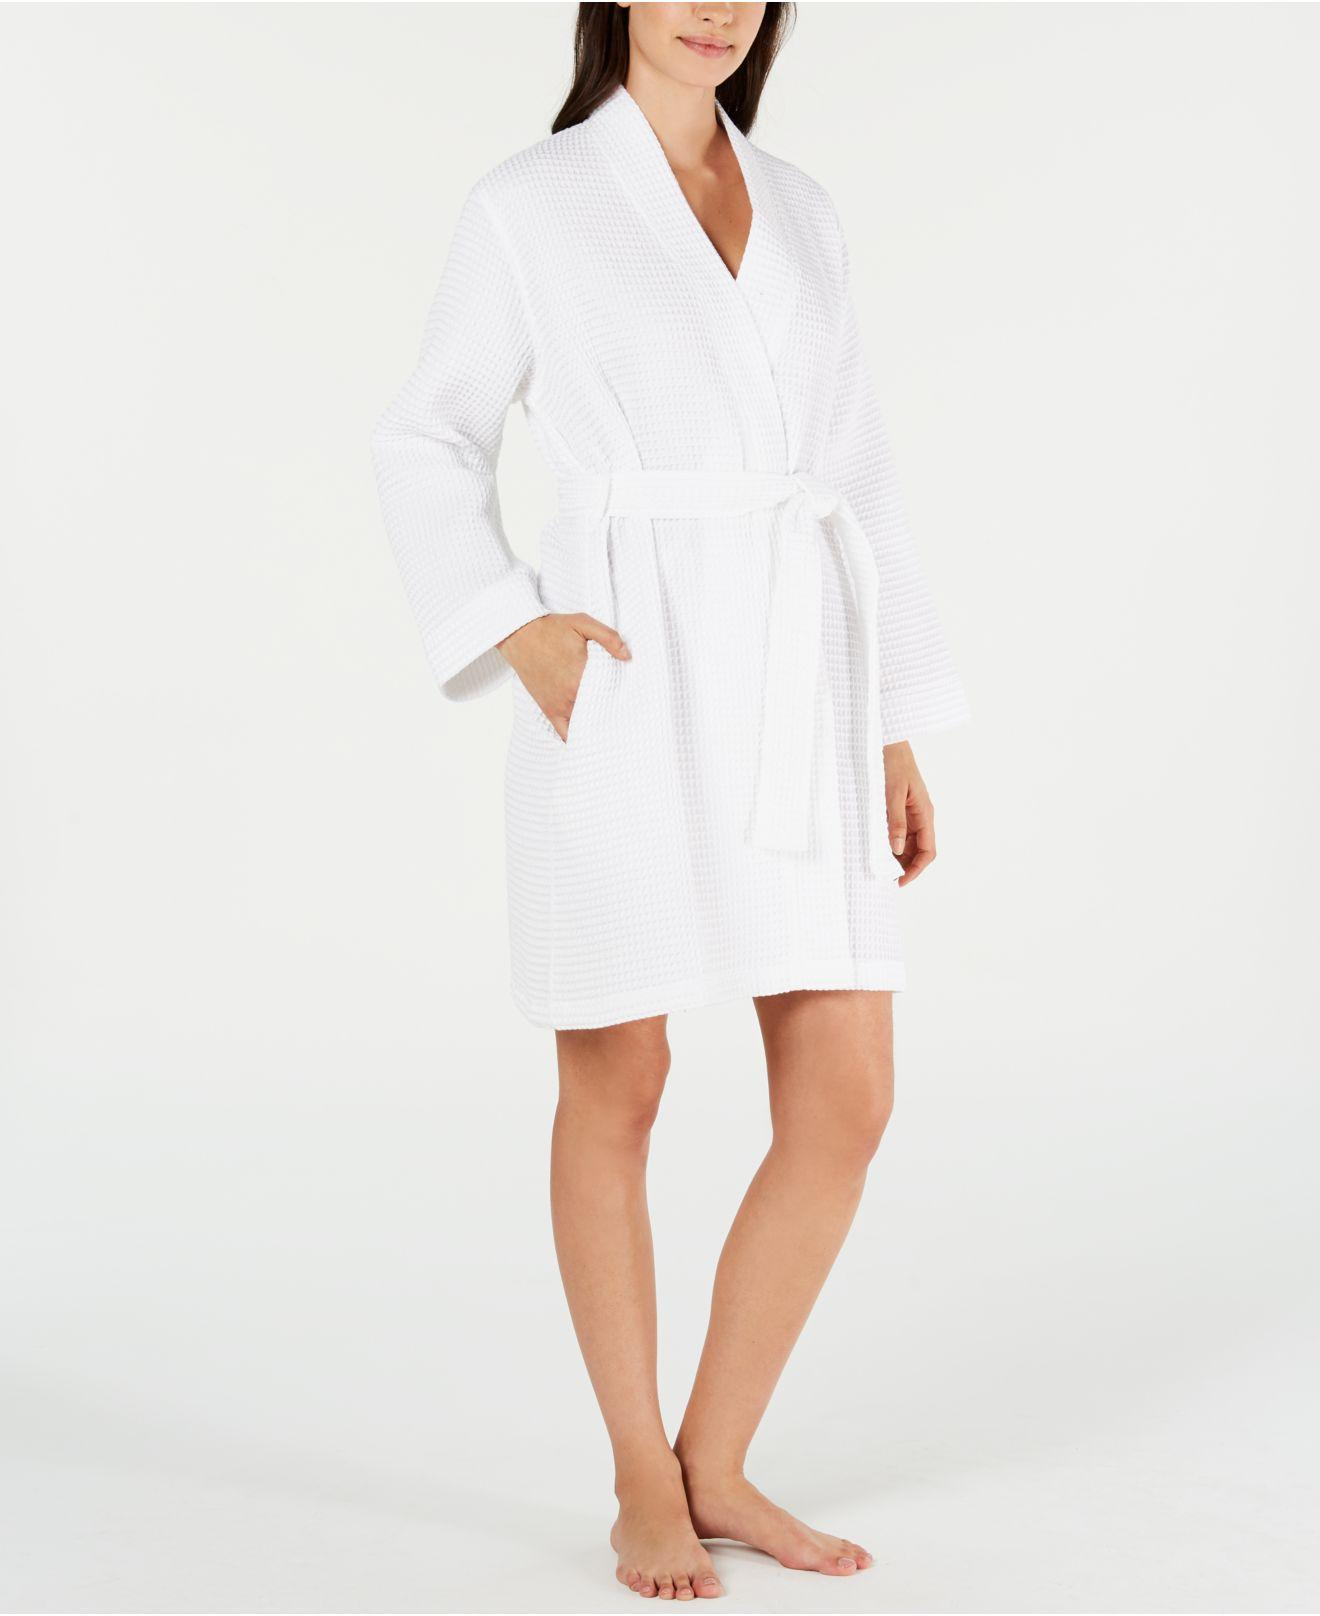 f33dcc4730 Charter Club. Women s White Woven Cotton Waffle Robe ...